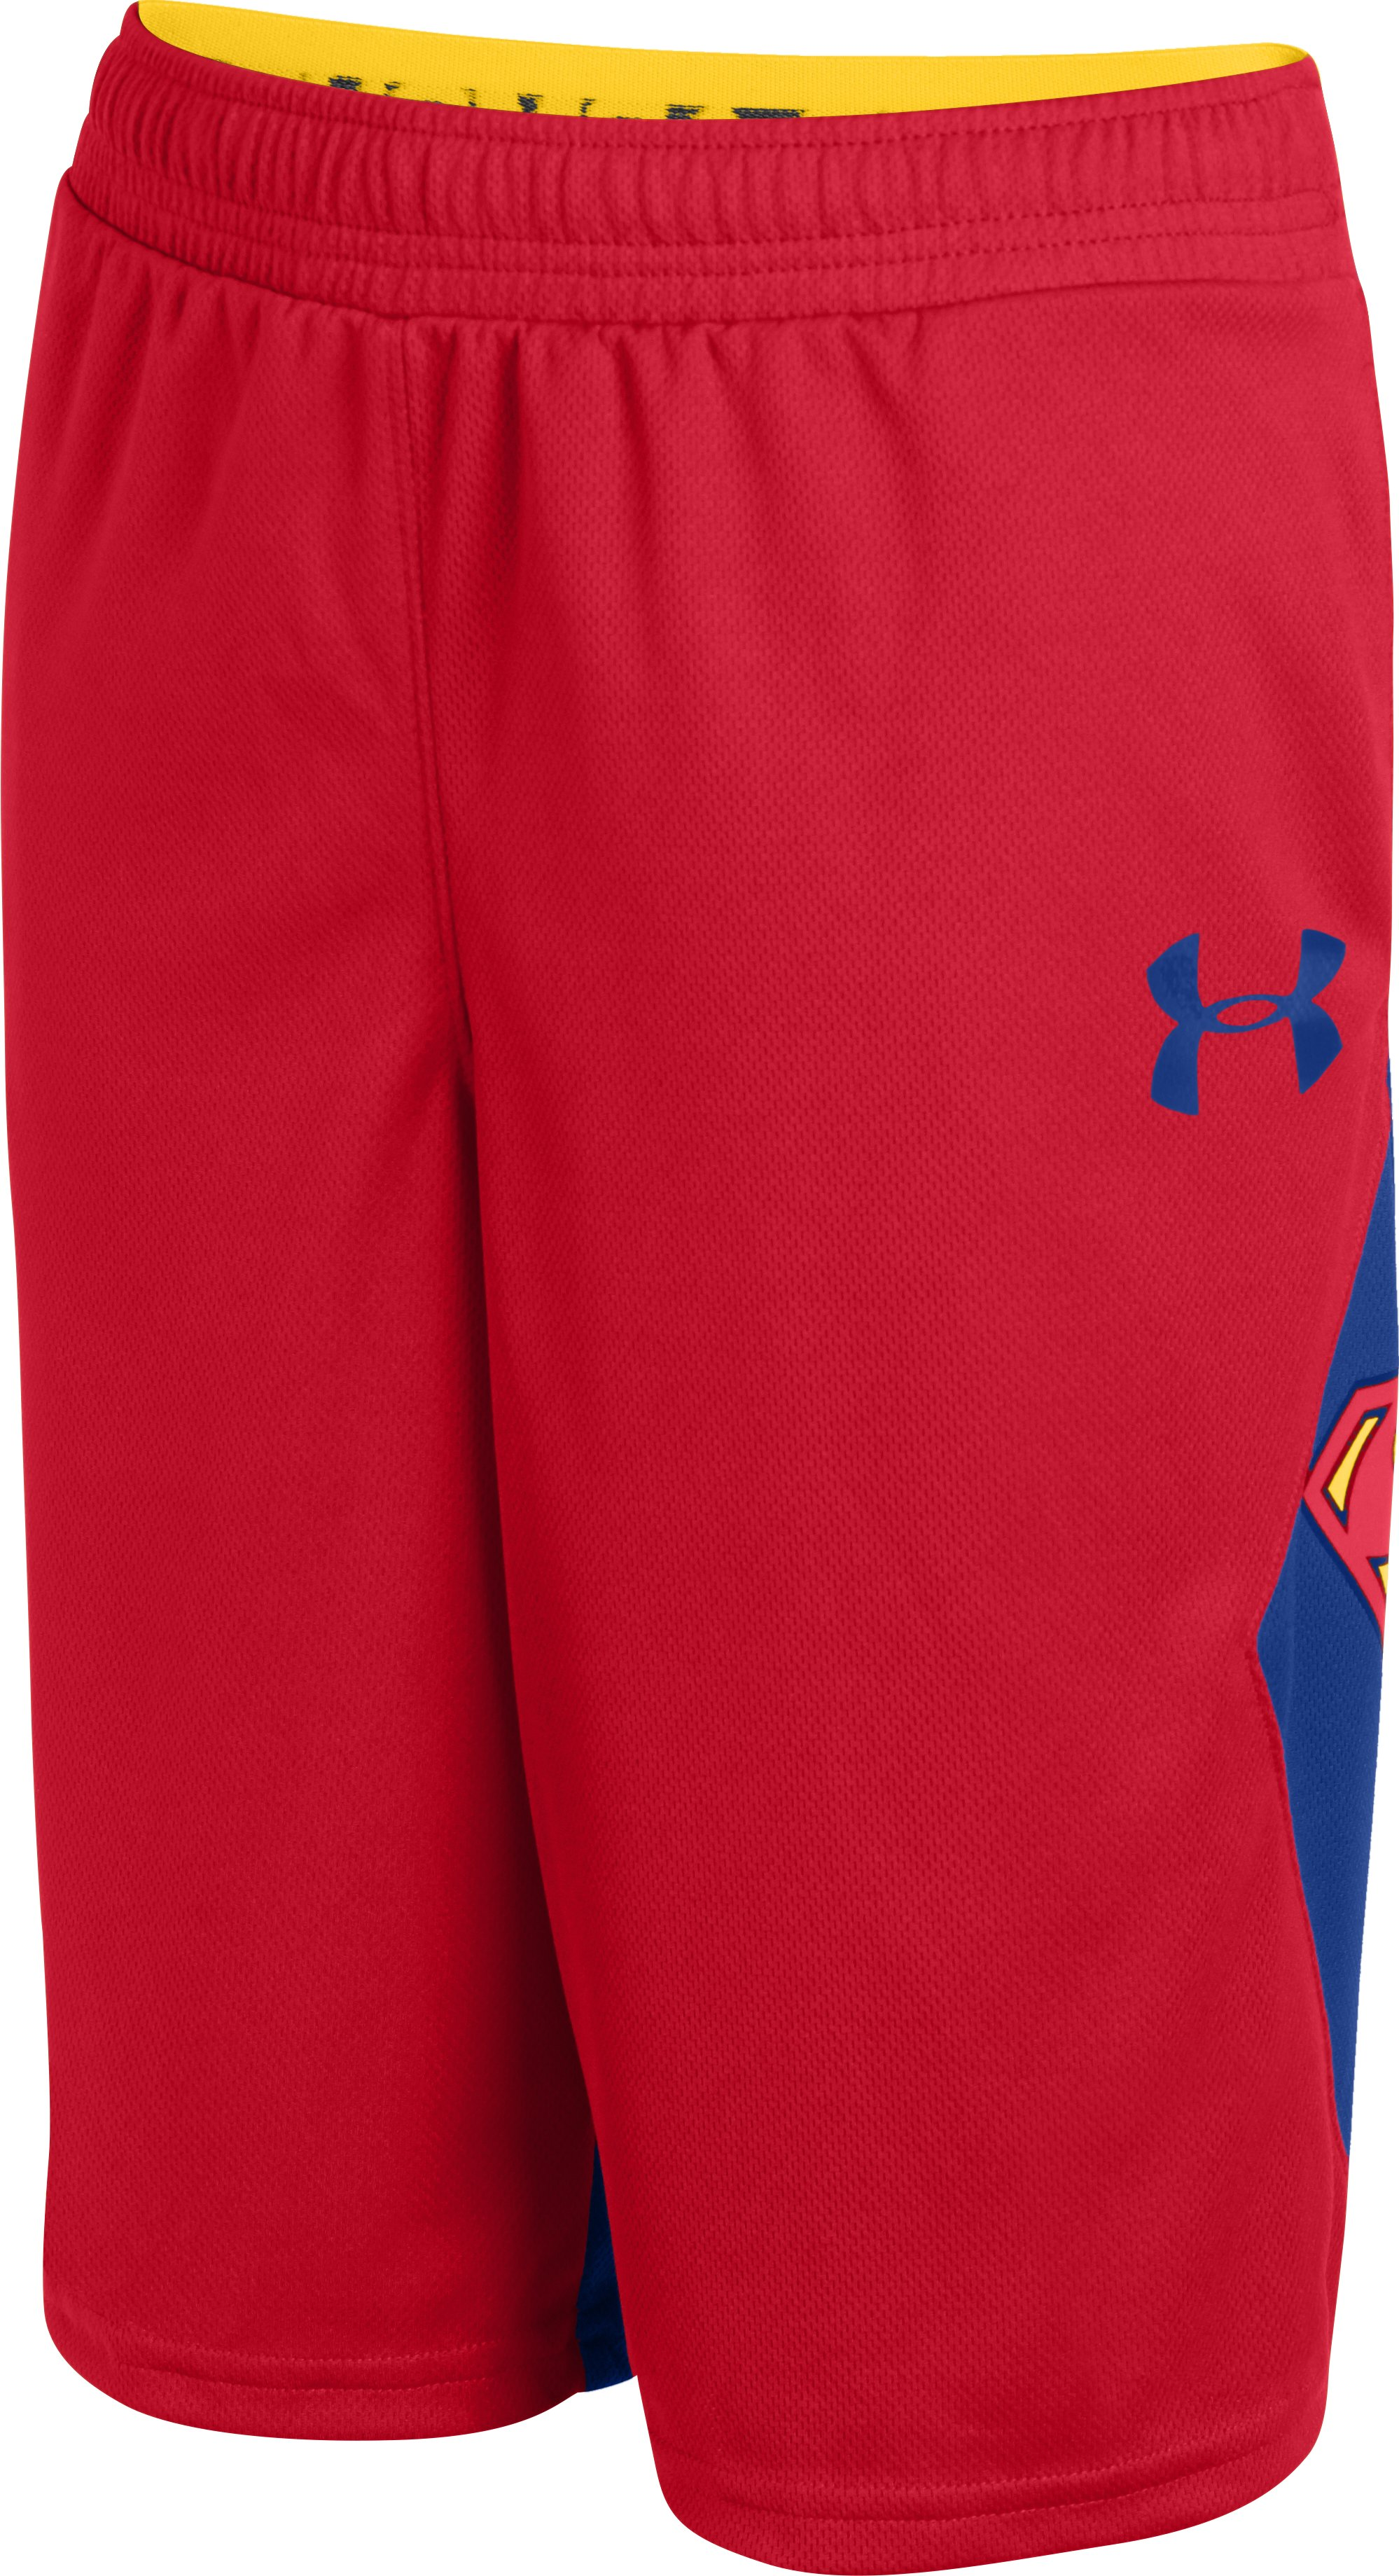 Boys' Under Armour® Hero Shorts, Red